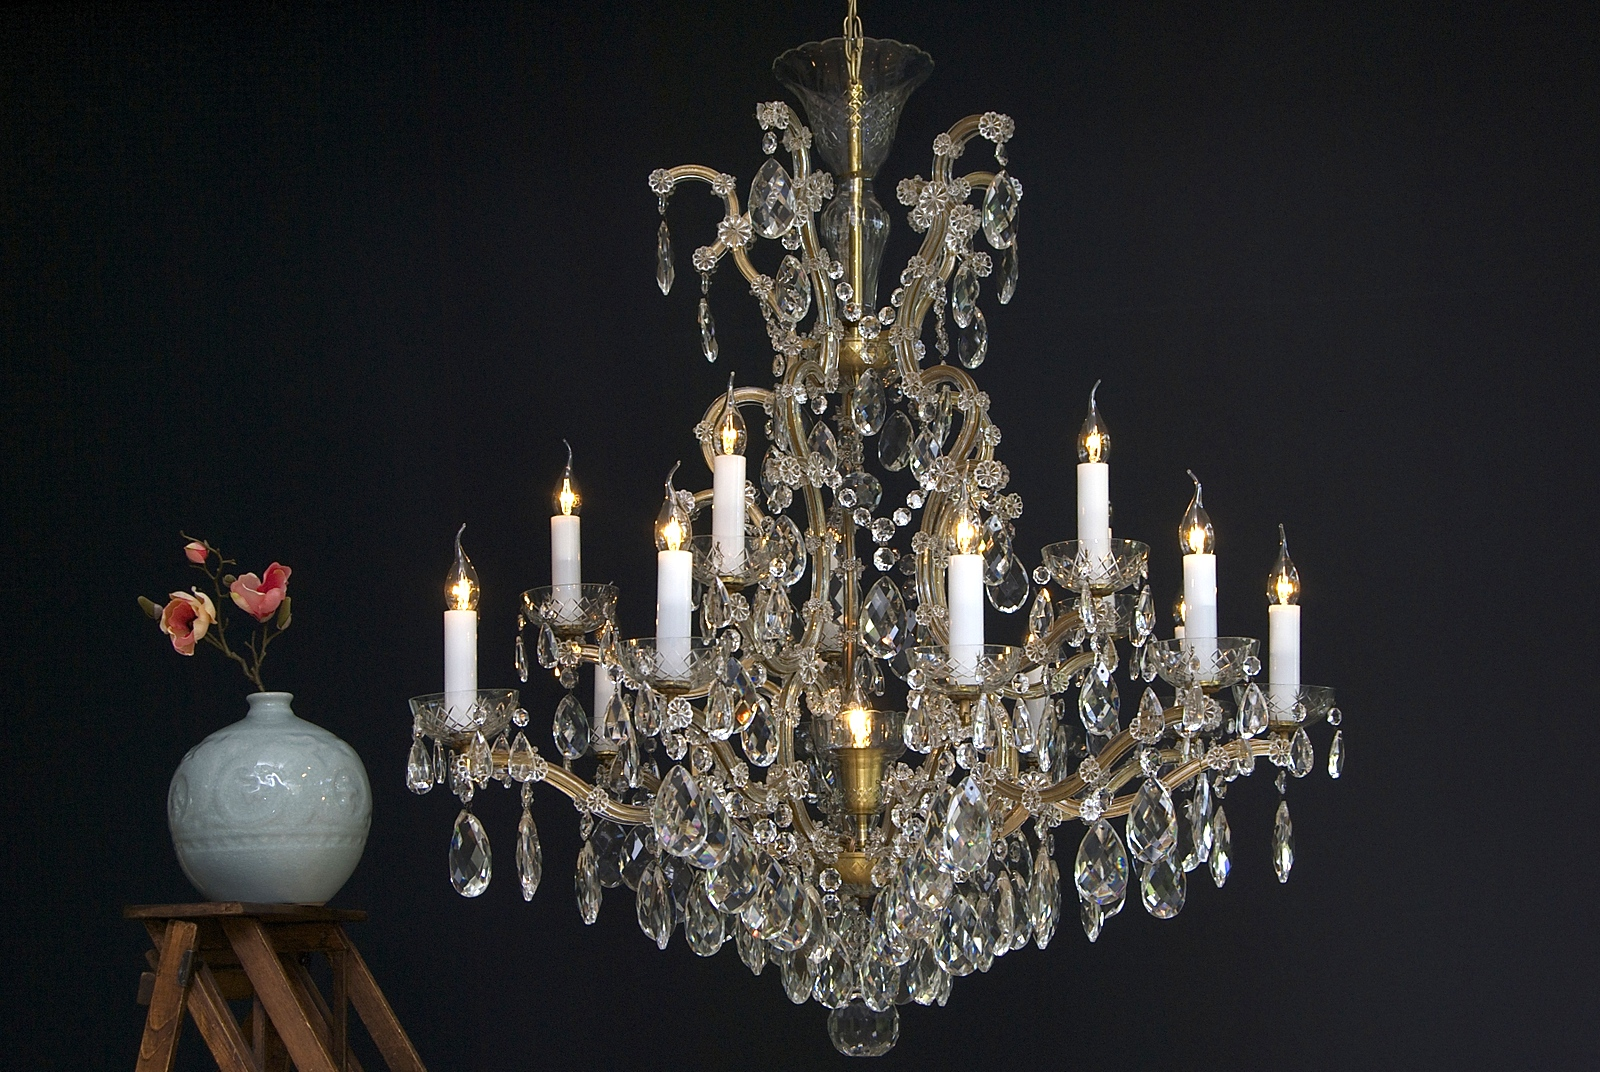 Large chandelier with Bohemian crystals and 16 light